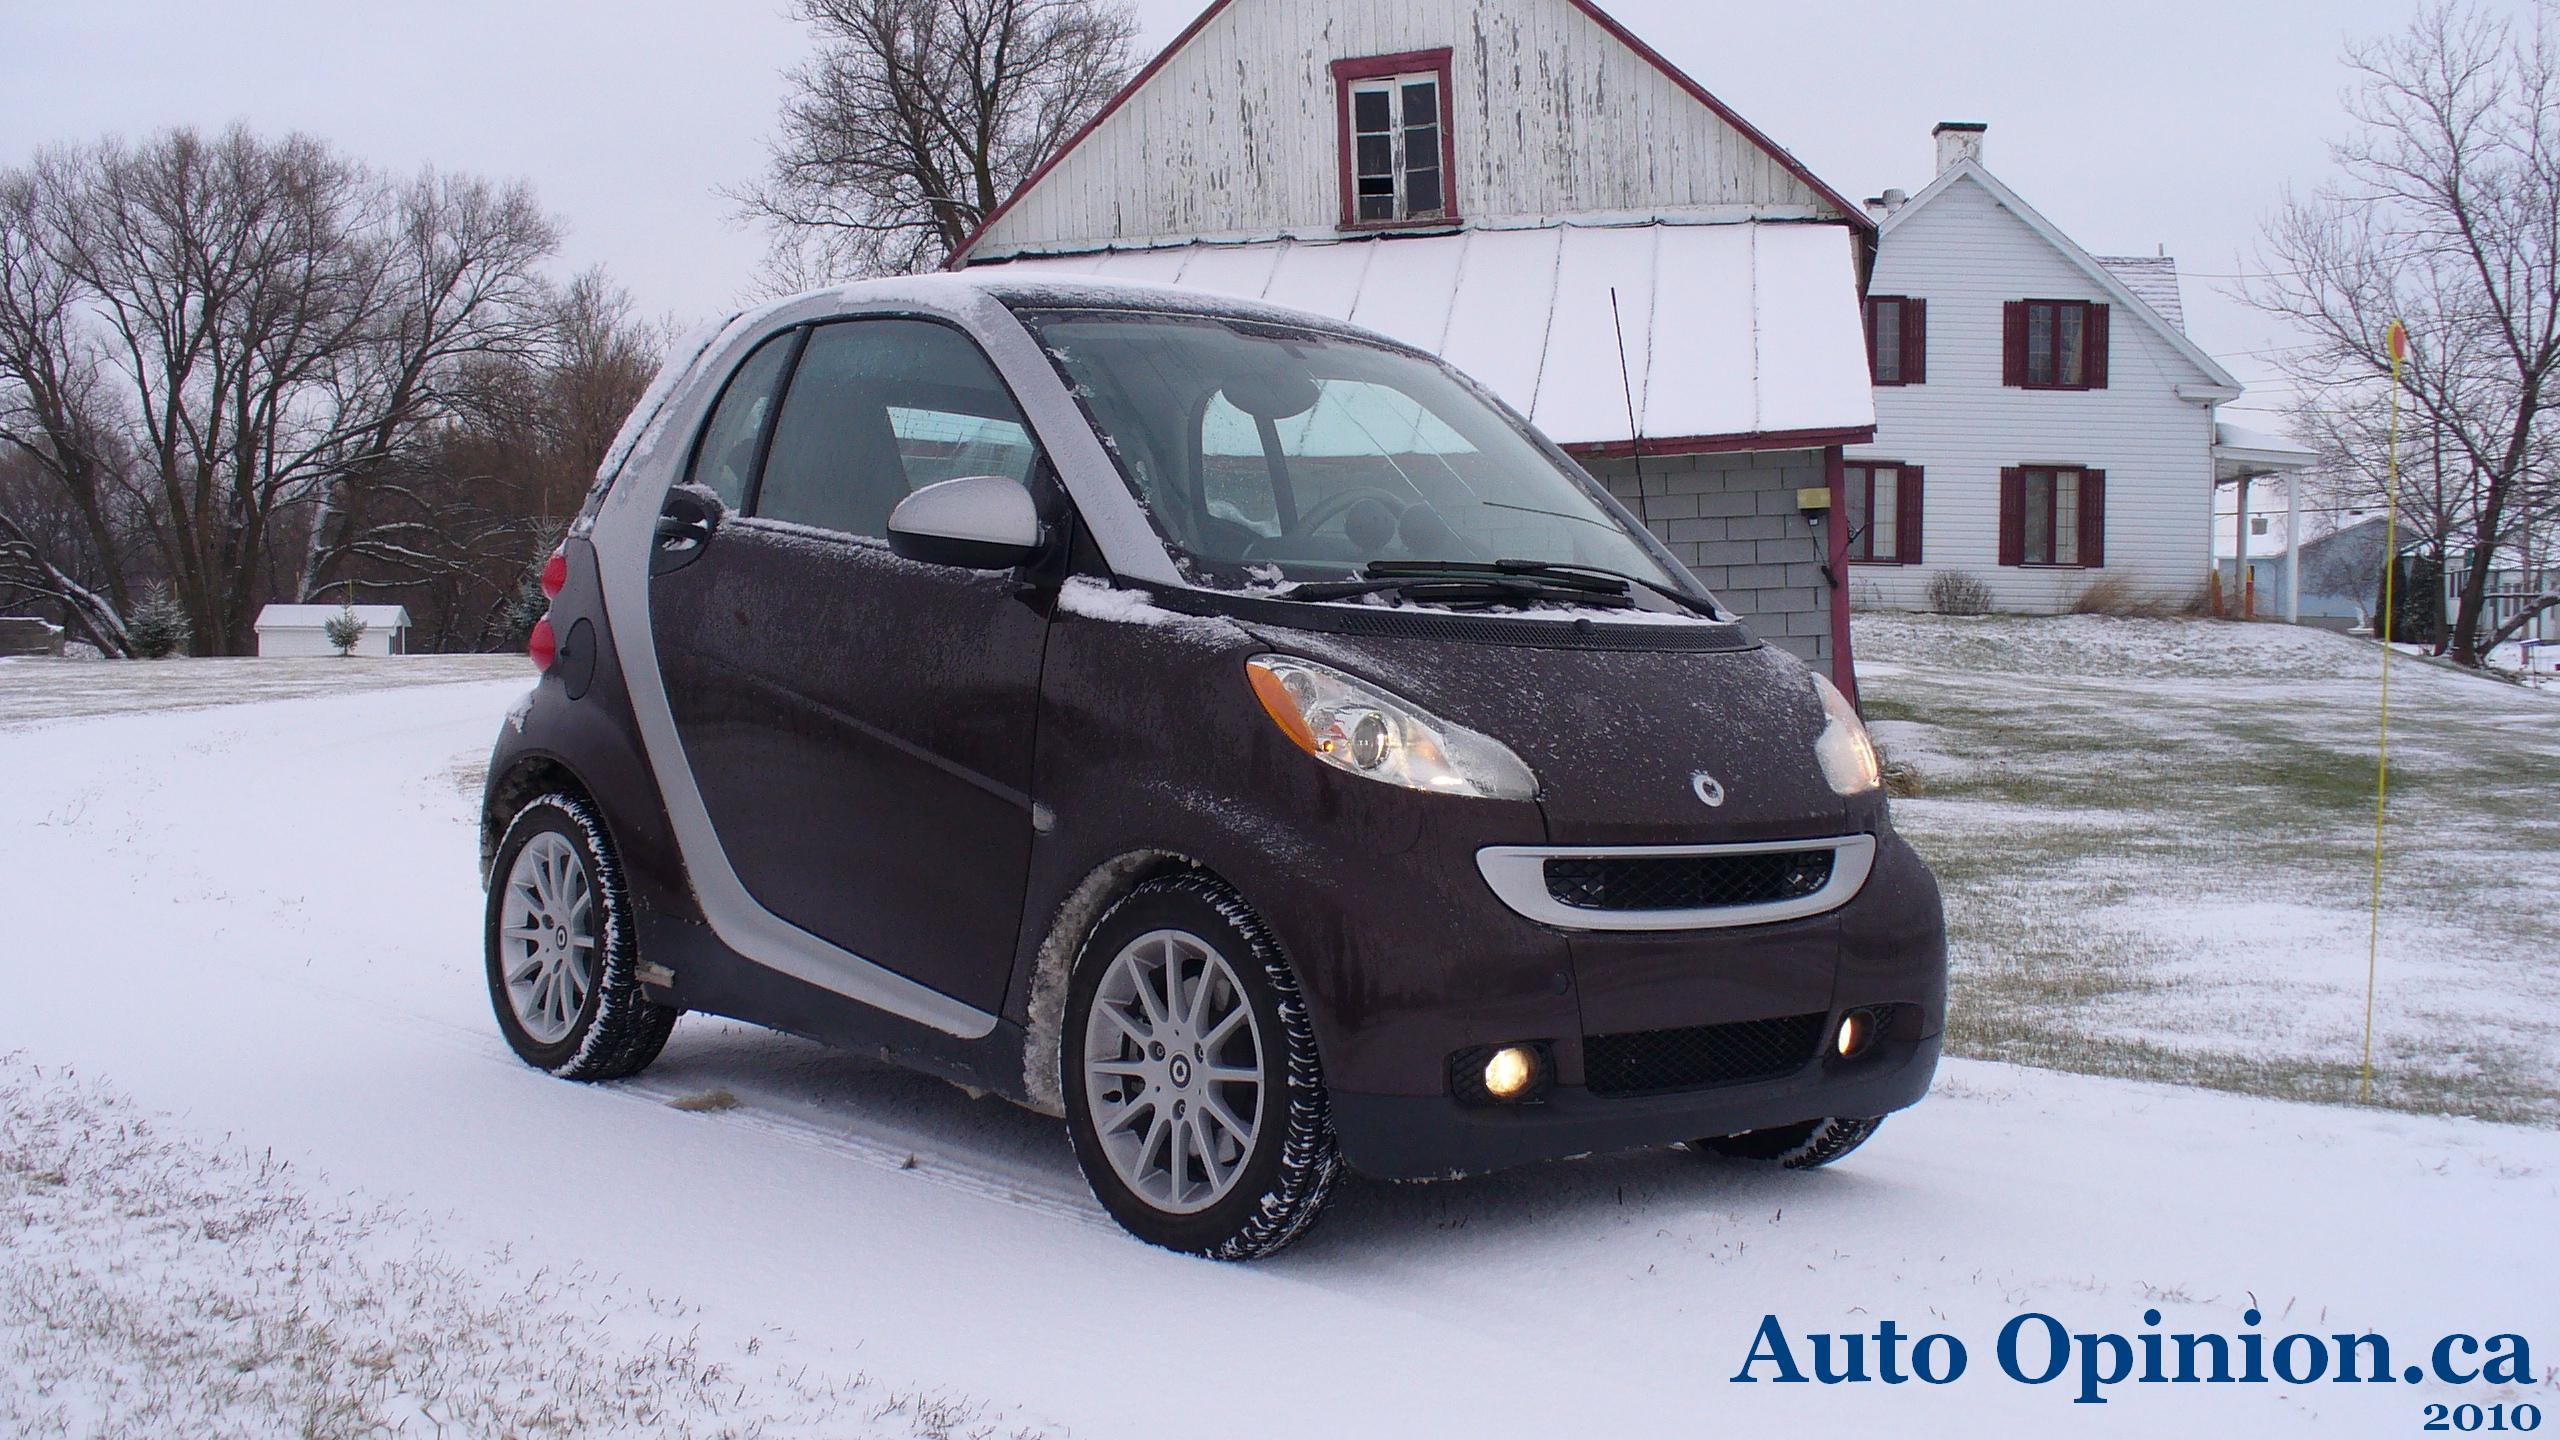 Essai routier complet: smart fortwo 2010